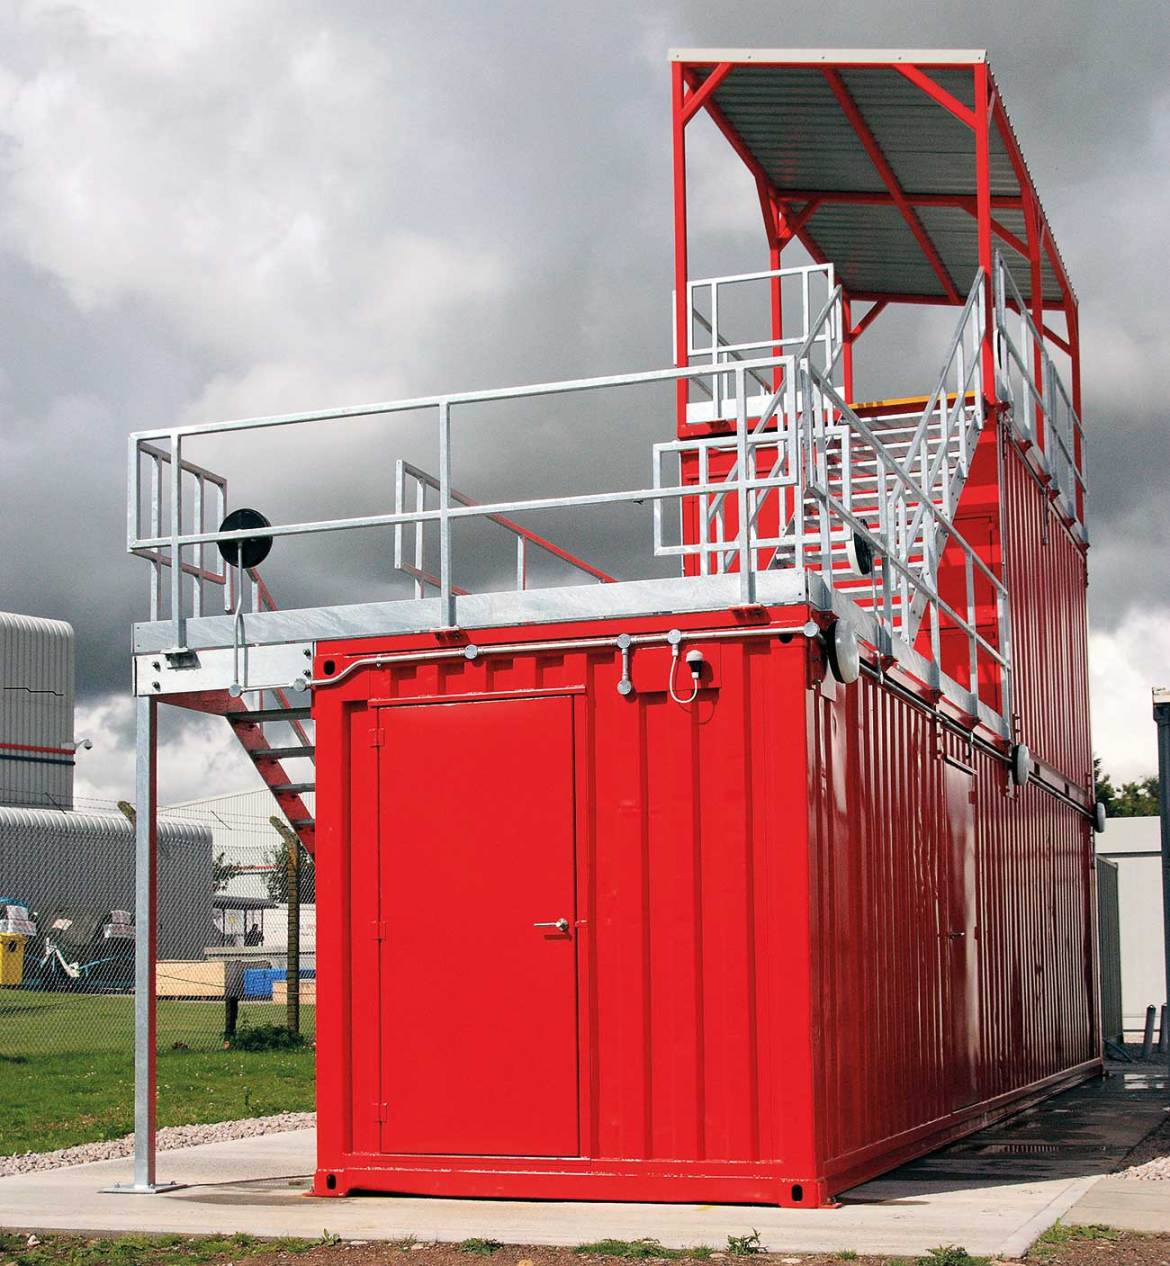 Confined Space training simulator with varying type and size of entry points, providing both vertical and horizontal travel.